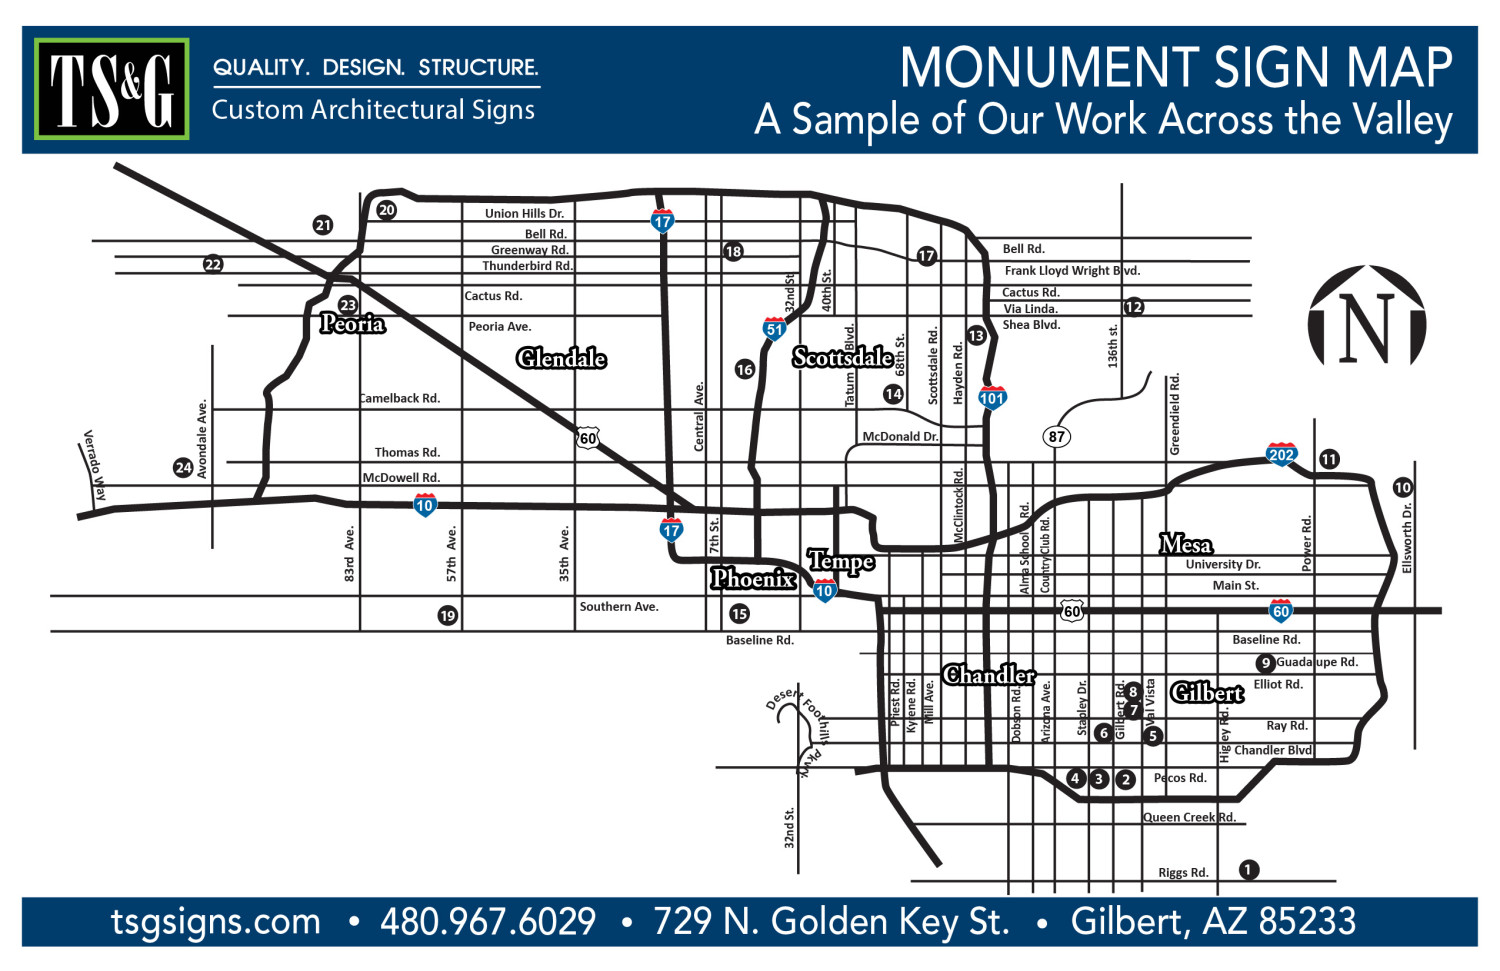 TSG HOA Monument Map 2-21-18-01